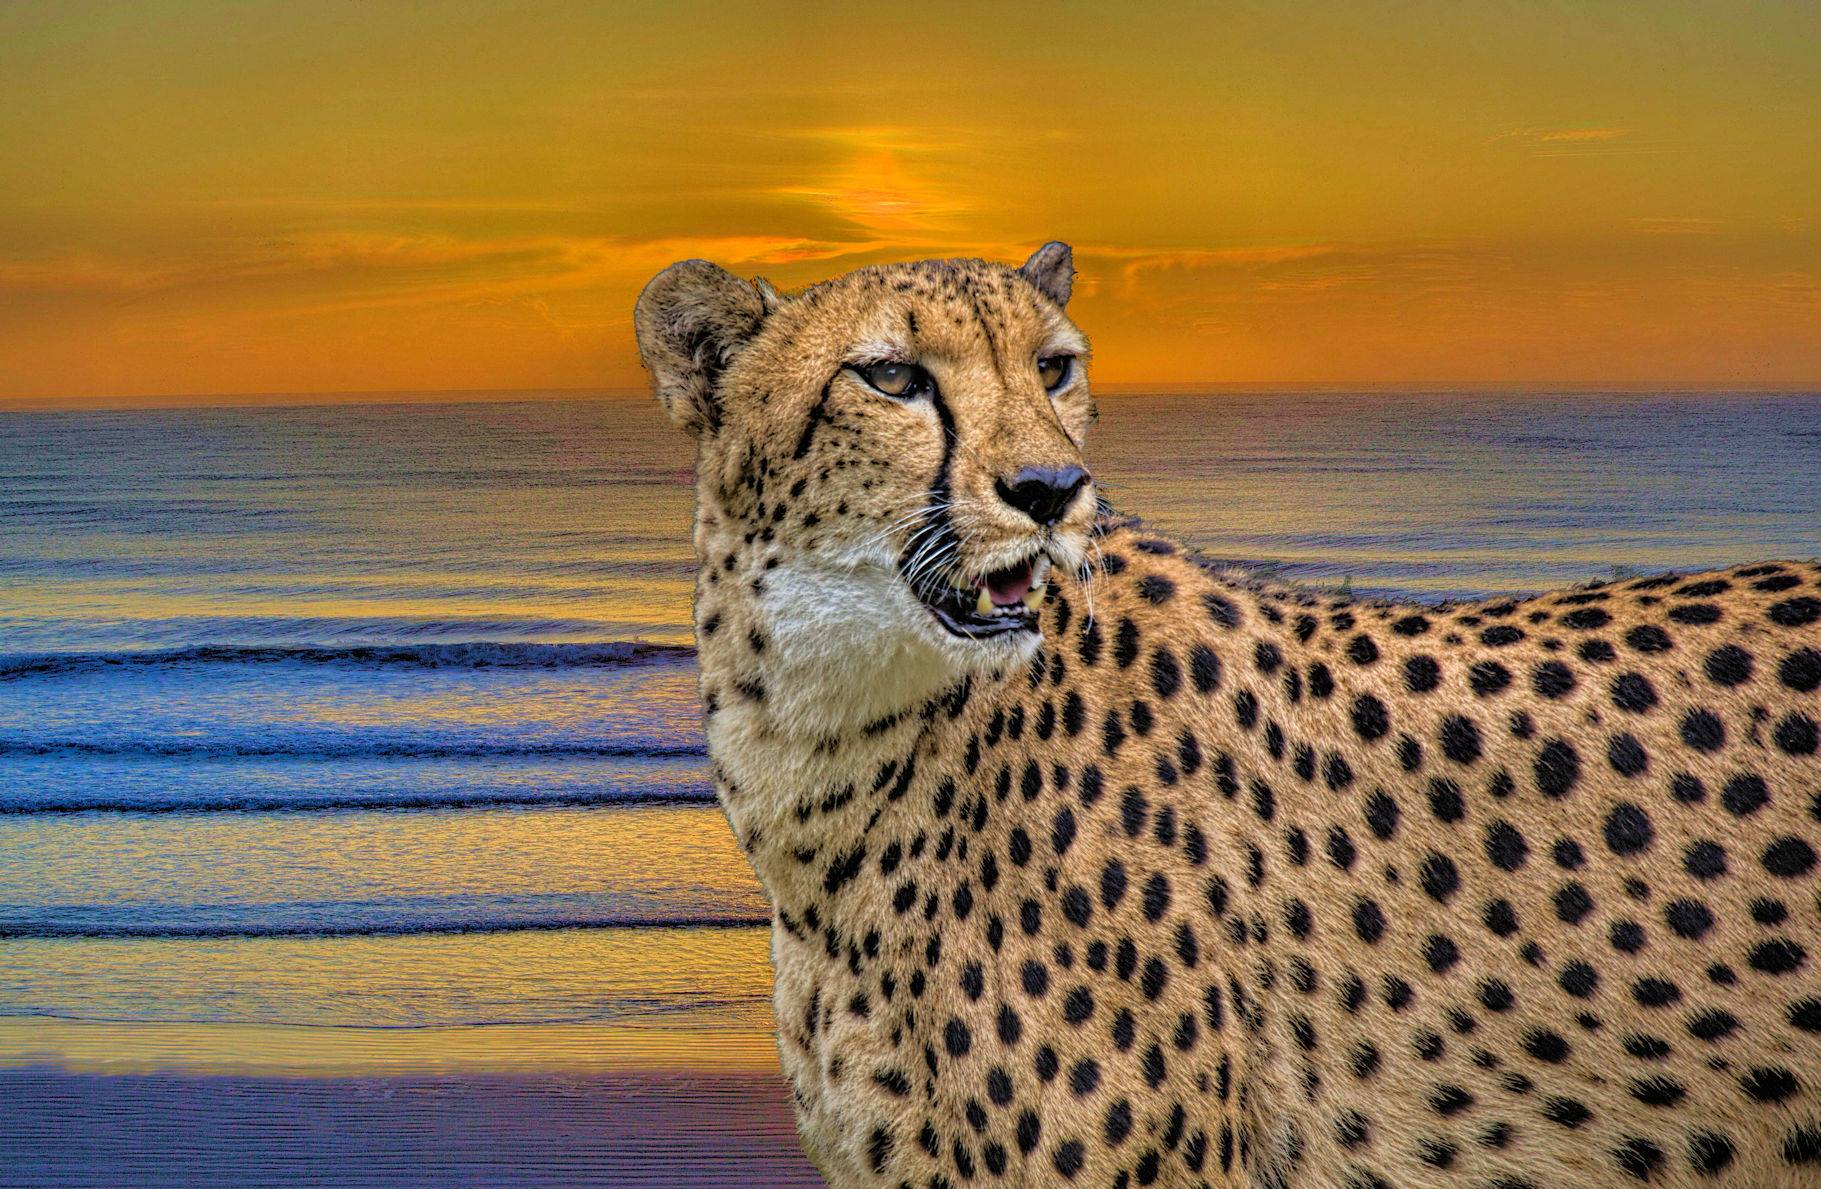 matthews_cheetah sunset.jpg